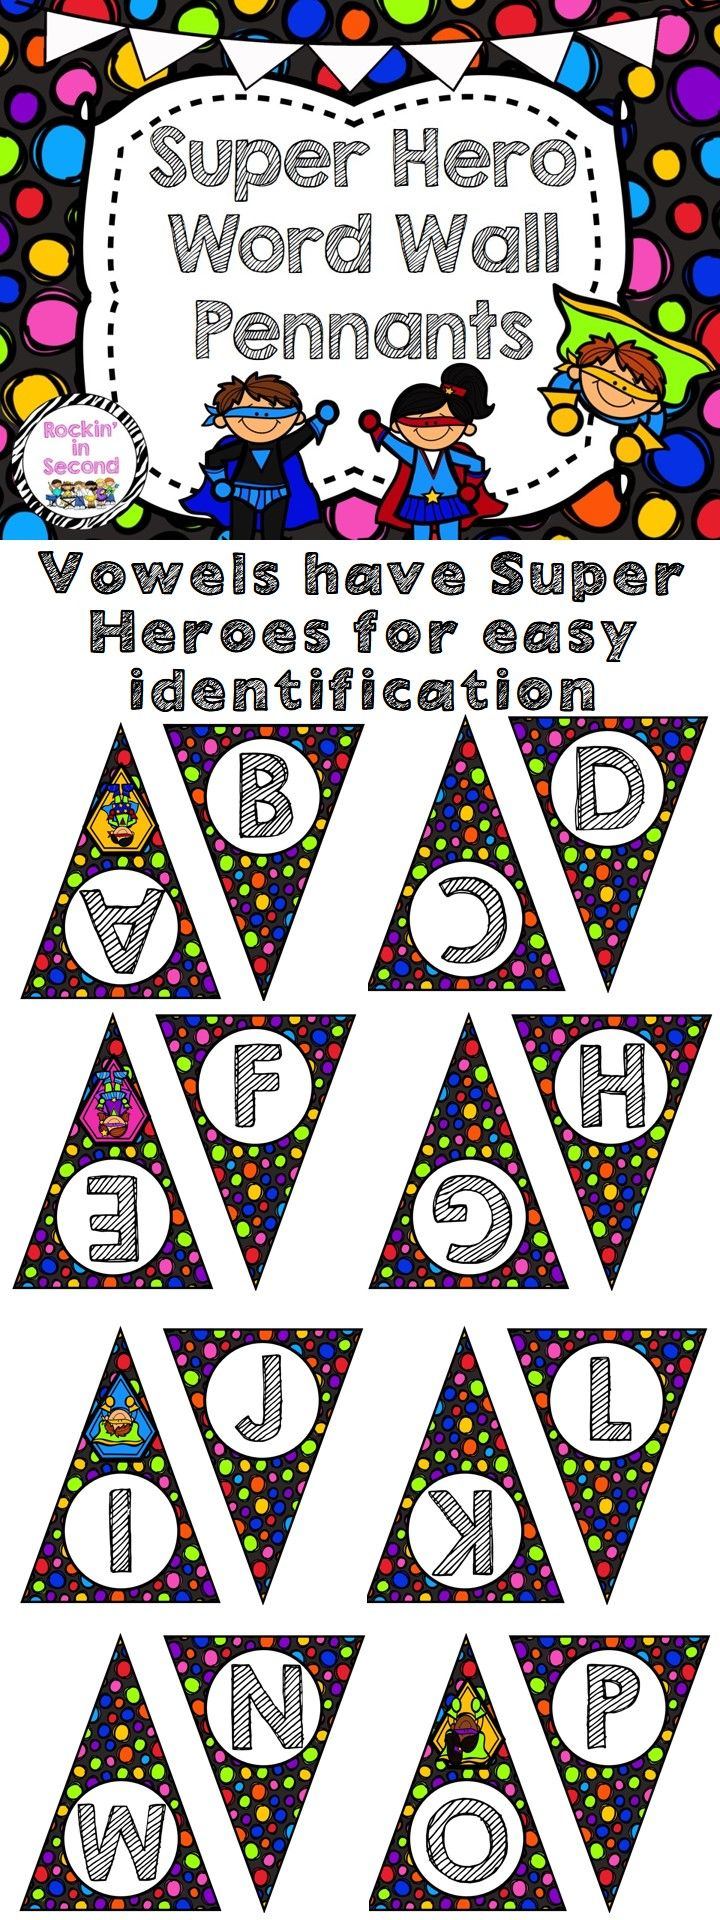 Super Hero Theme Word Wall Pennants Vowels have Super Hero Accents to help with identification. Turn any phrase you wish into a decorative banner for your classroom door, wall, or bulletin board with this set of alphabet pendants. At home, use them to decorate for a birthday party or baby shower. Visit my store for more Super Hero Themed Products Follow me on TPT for more exciting activities and FREEBIES!! All new products are 50% off for the first 24 hours.